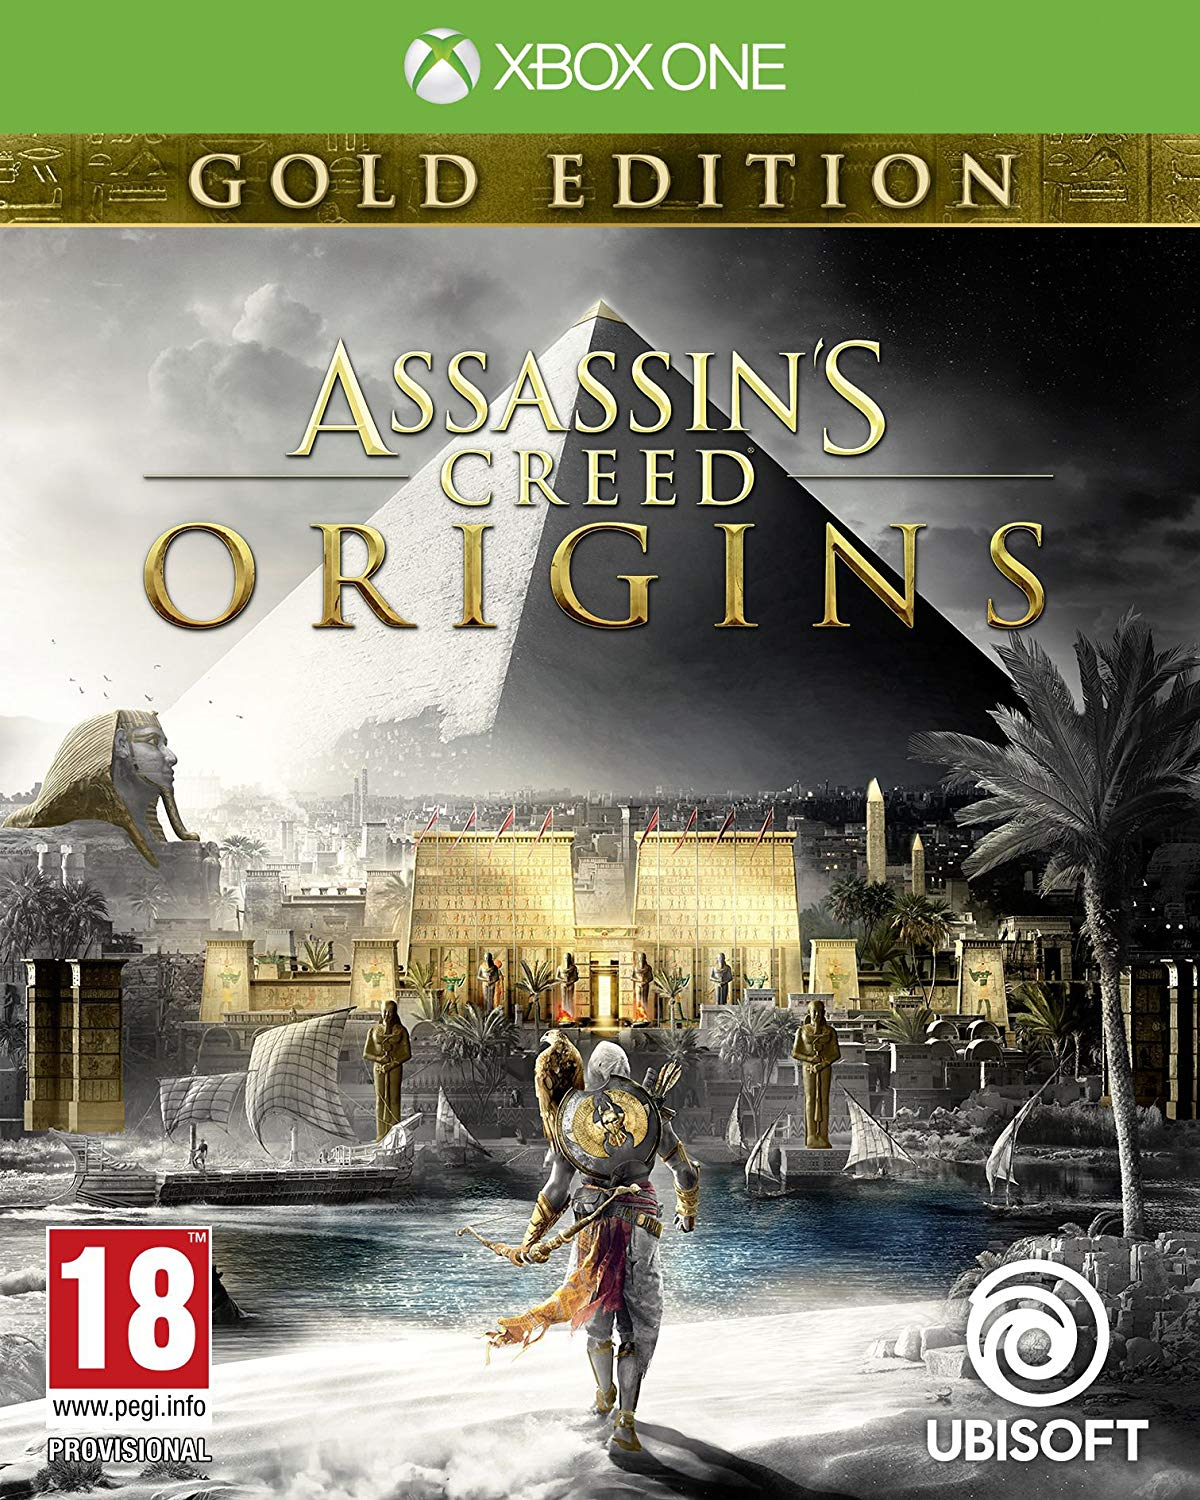 Assassins Creed Origins GOLD+2 games (user1) /XBOX ONE